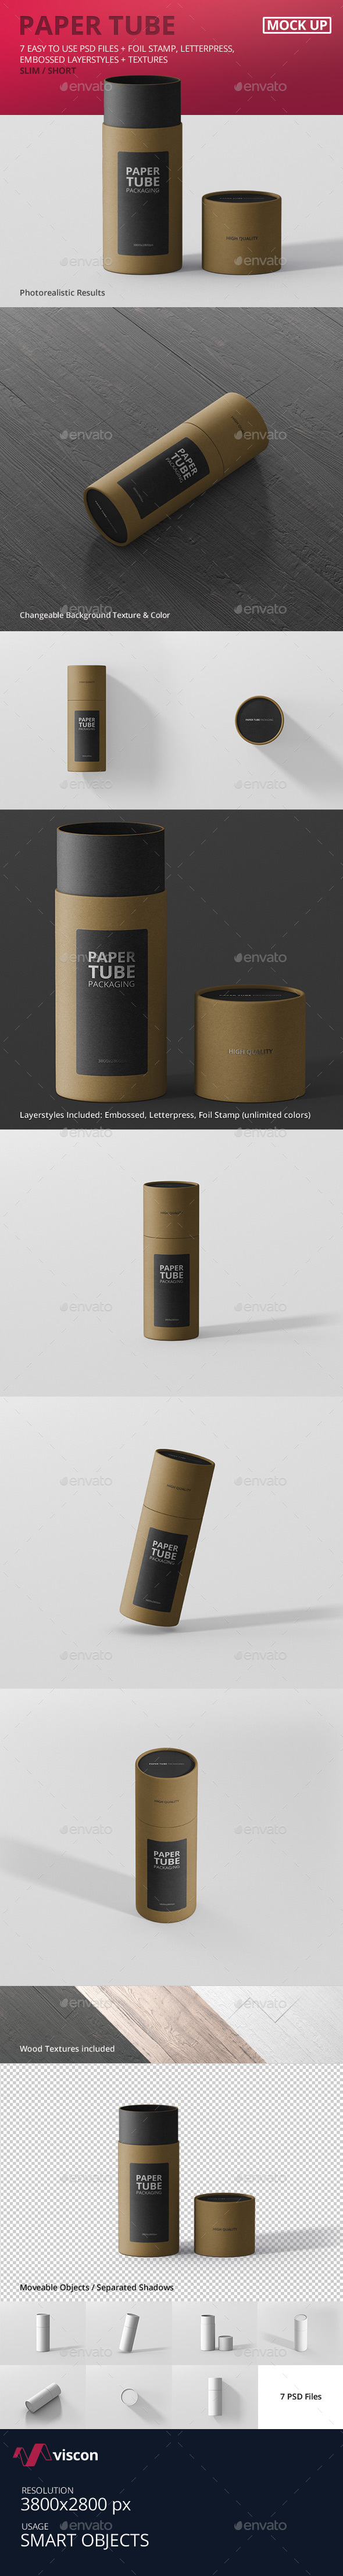 Paper Tube Packaging Mockup - Slim Short